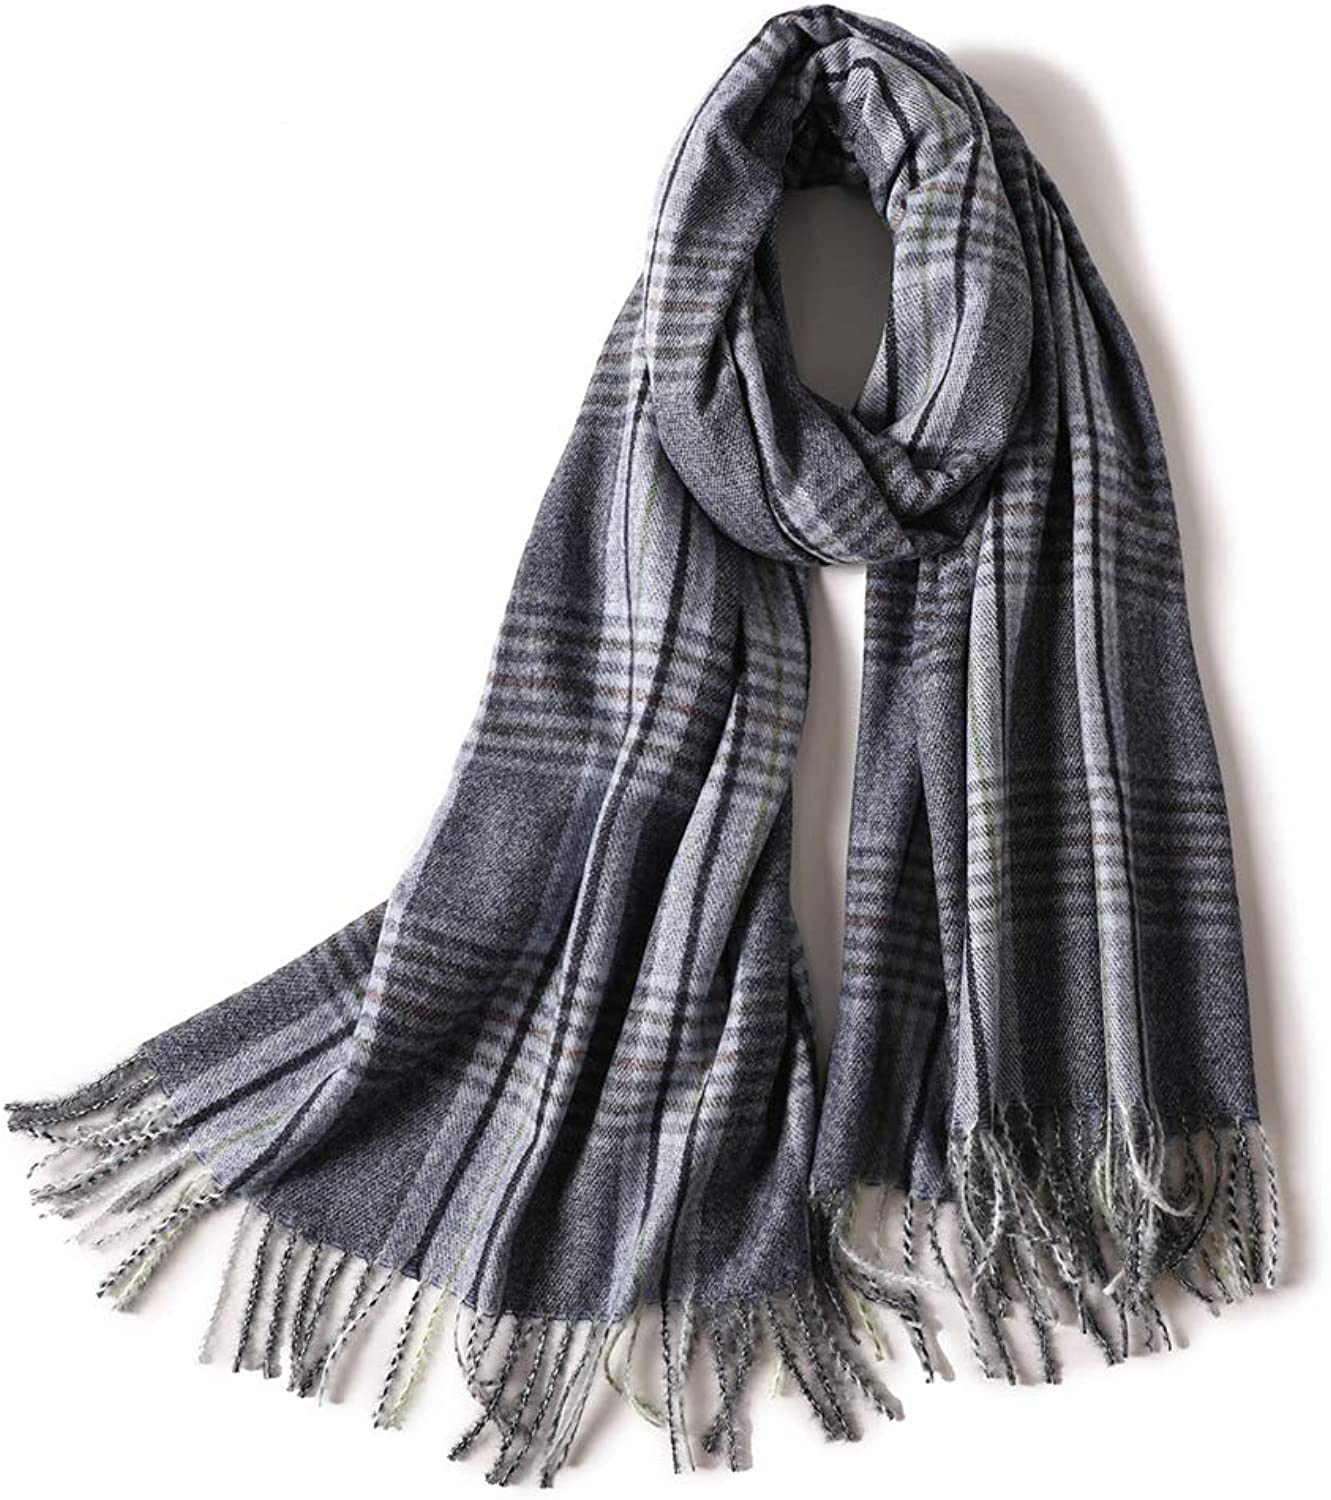 Cashmere Feel Winter Scarf For Women Super Soft Warm Plaid Pashmina Shawls Wraps